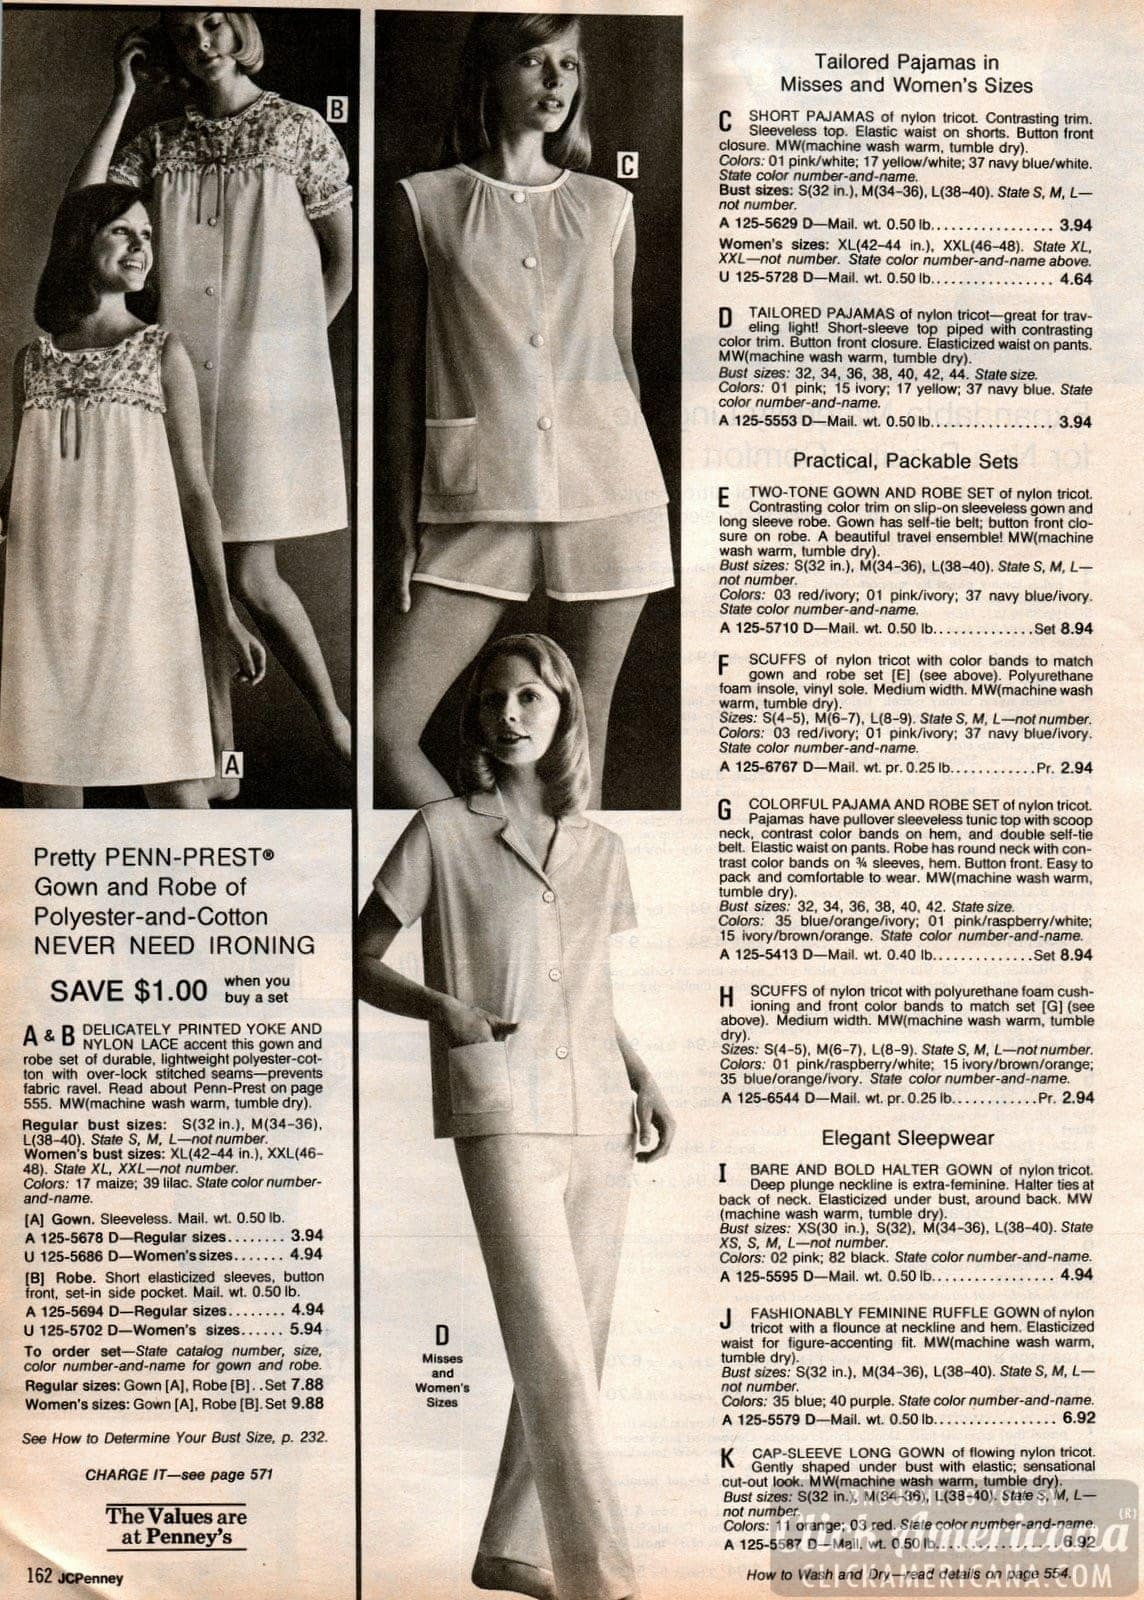 Retro 70s sleepwear for women (6)